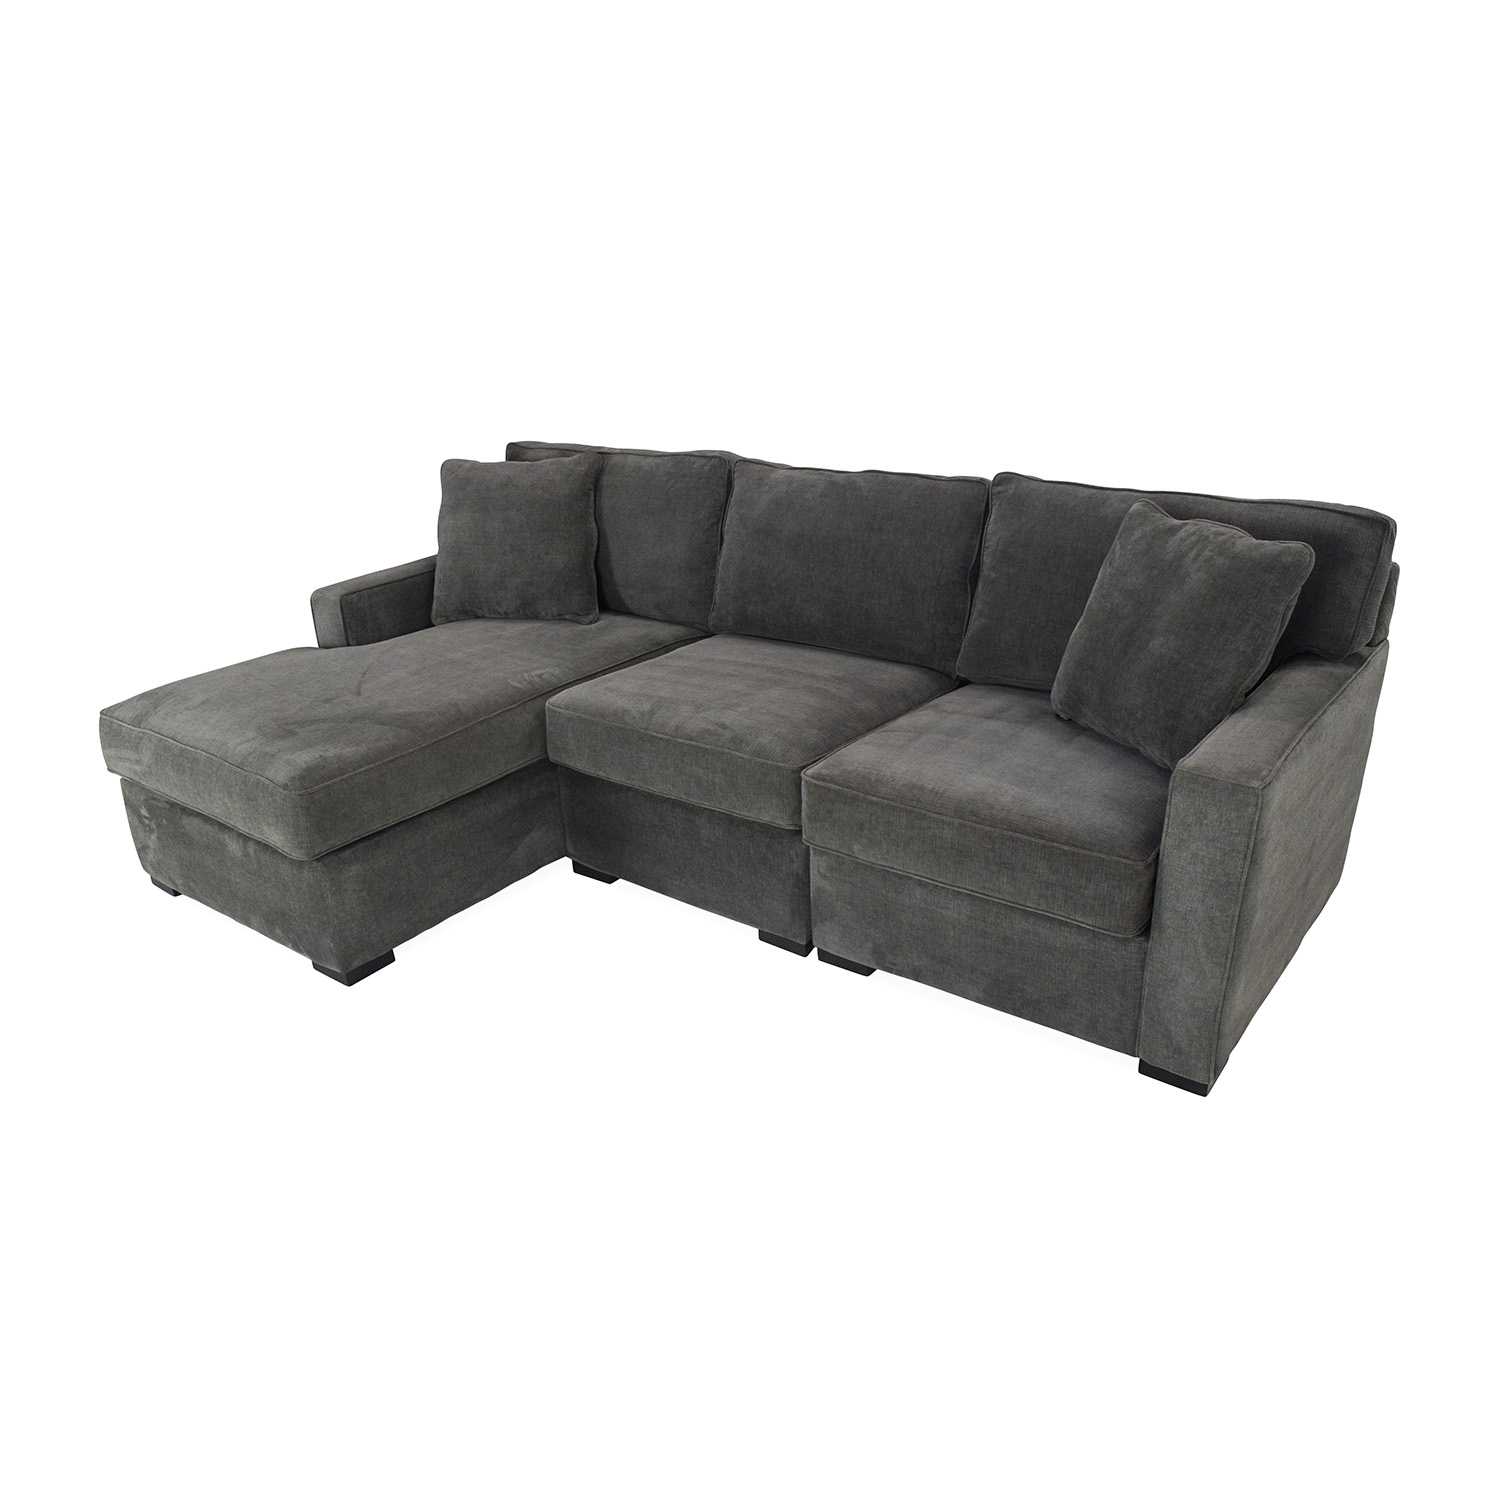 51% OFF Macy s Radley Sectional Sofa Sofas